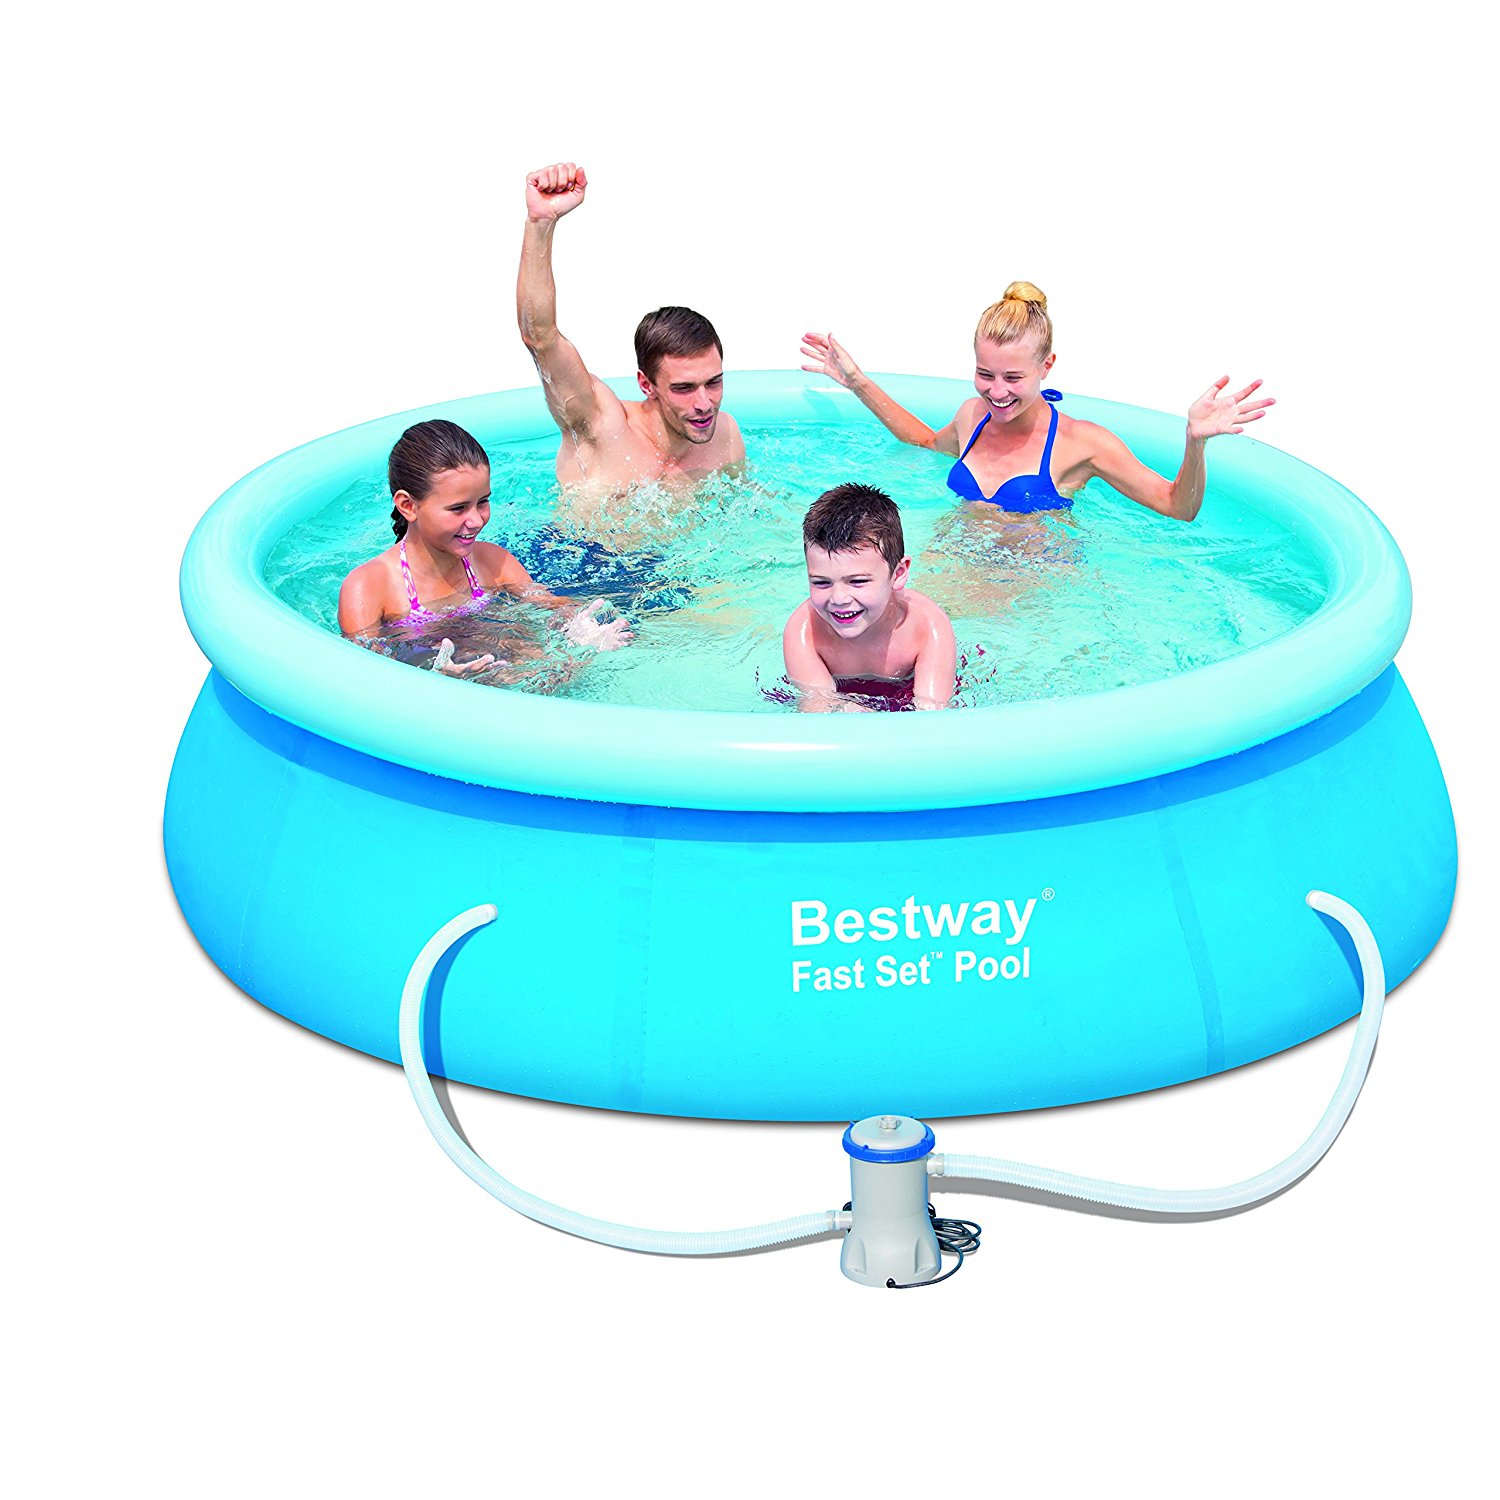 Abdeckplane Pool Bestway Cheap Bestway Fast Set Pool Find Bestway Fast Set Pool Deals On